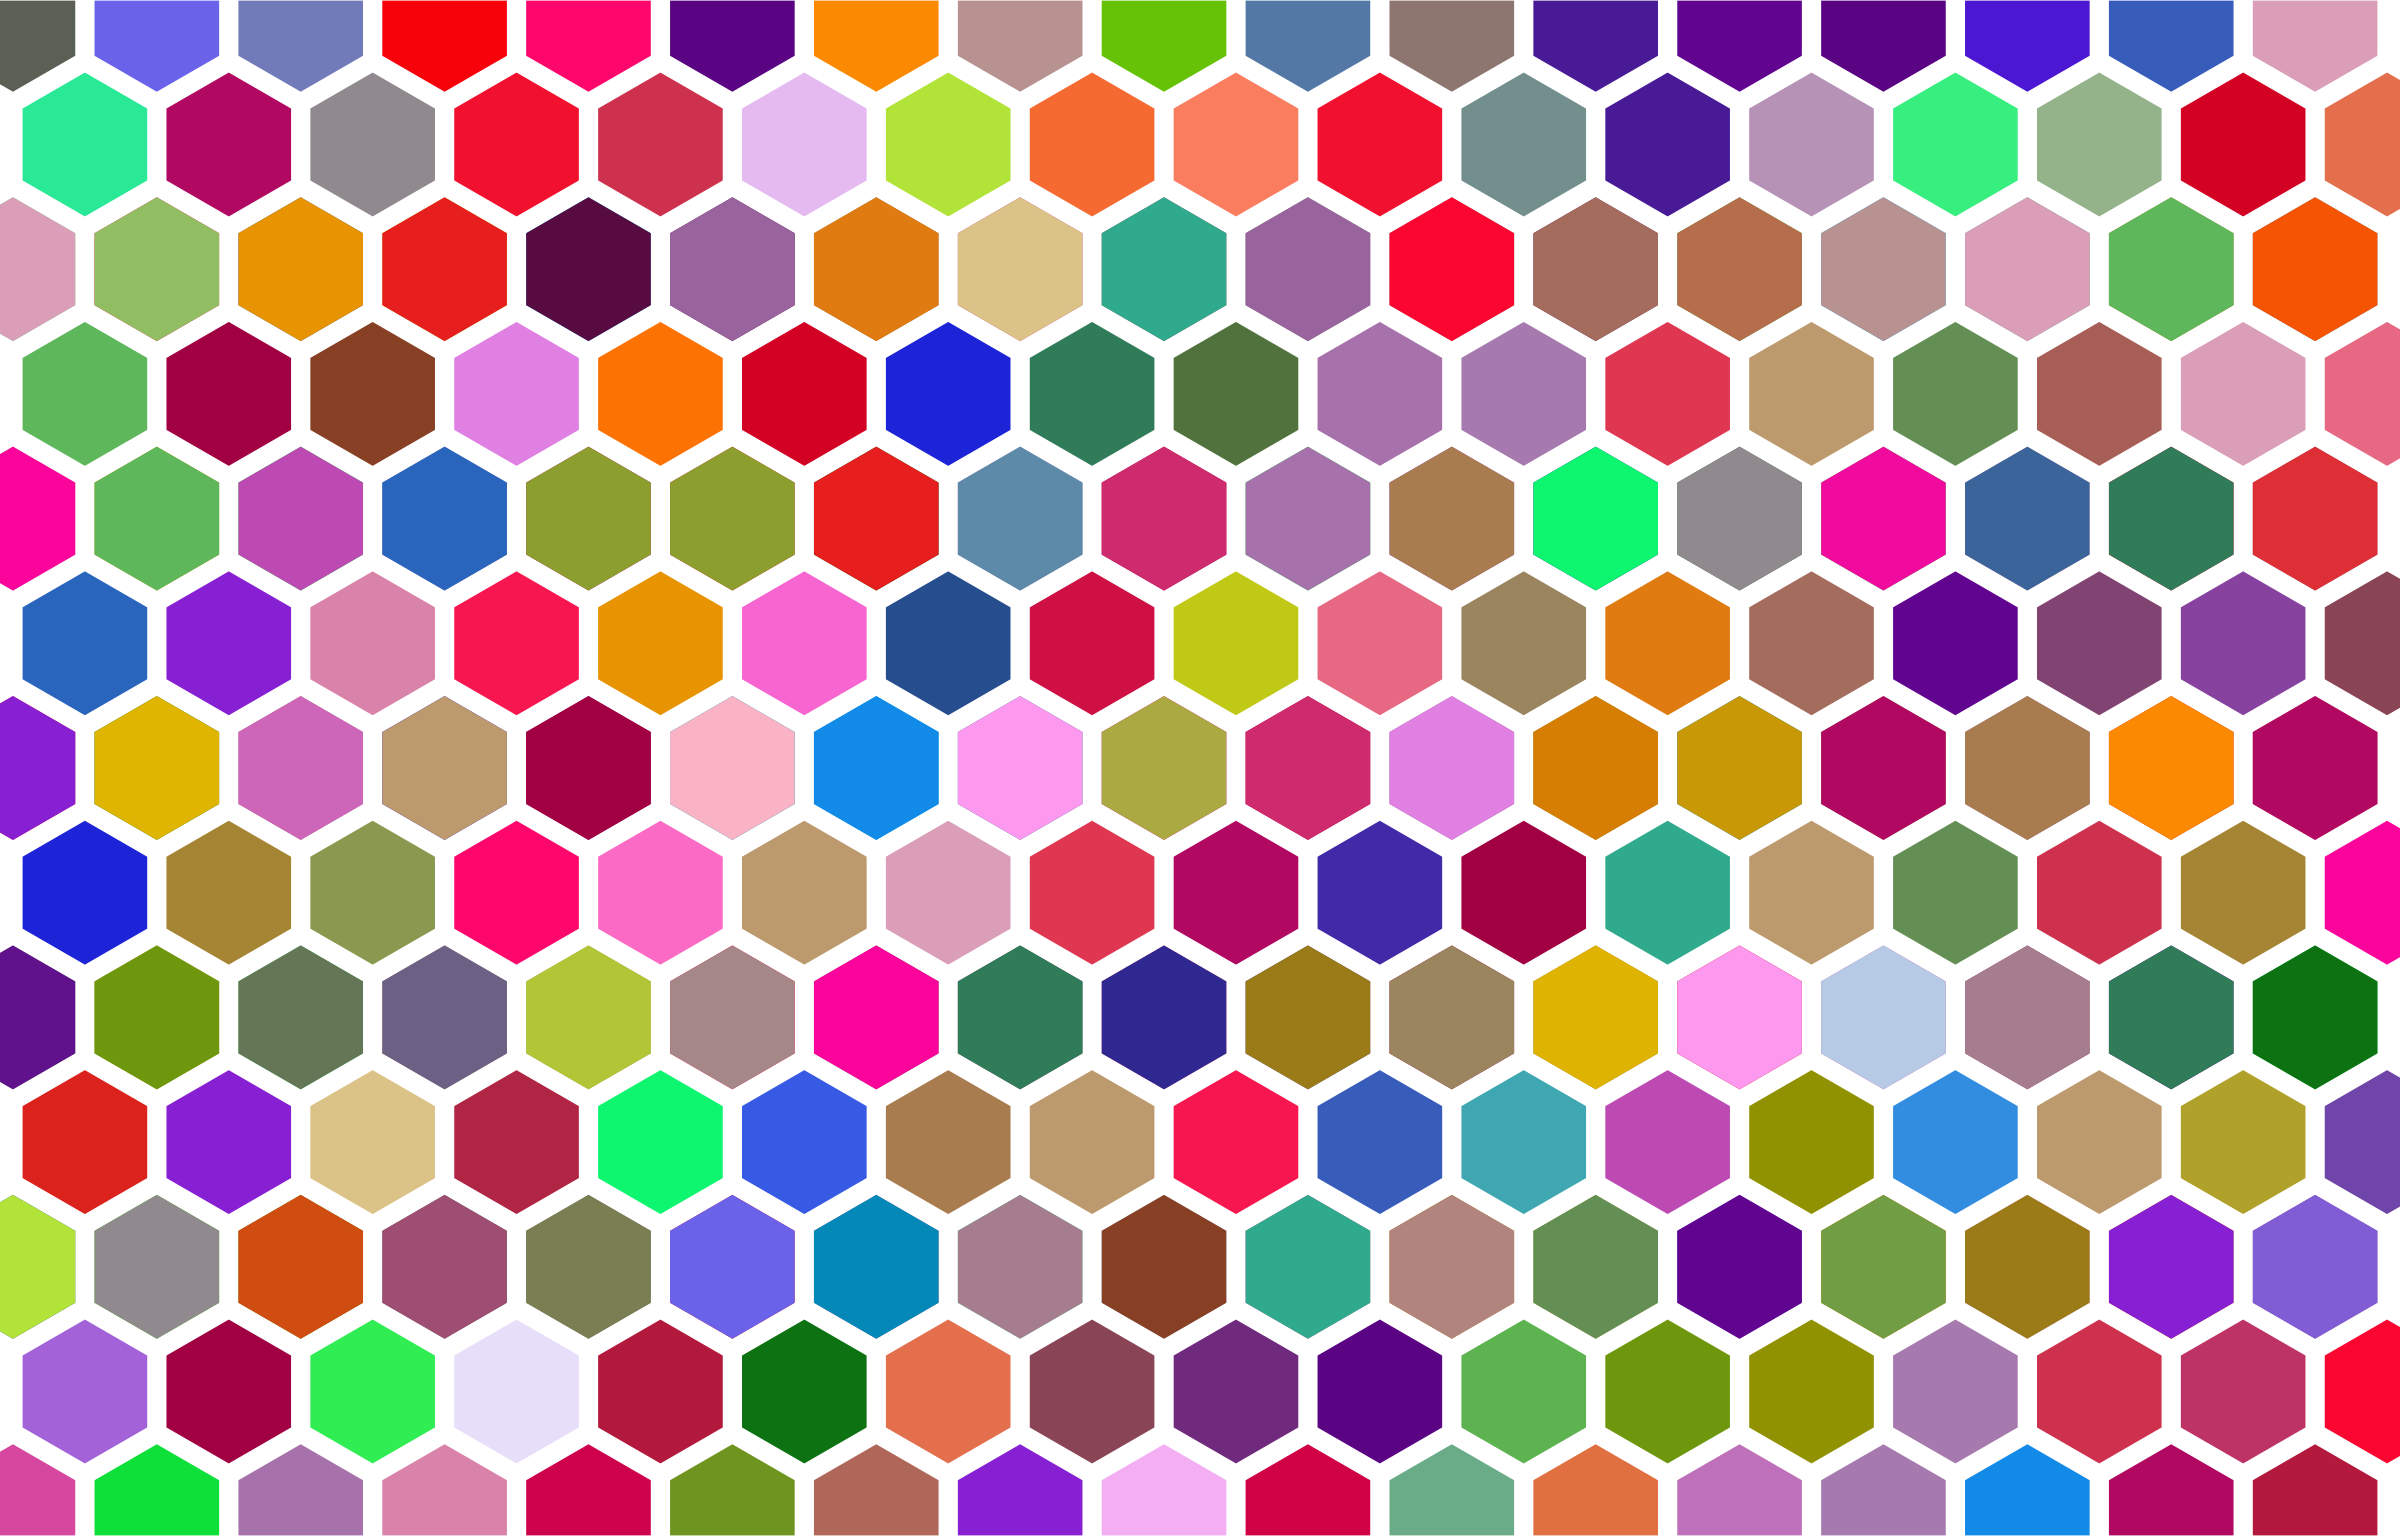 Colorful Hex Grid Pattern 3 by GDJ